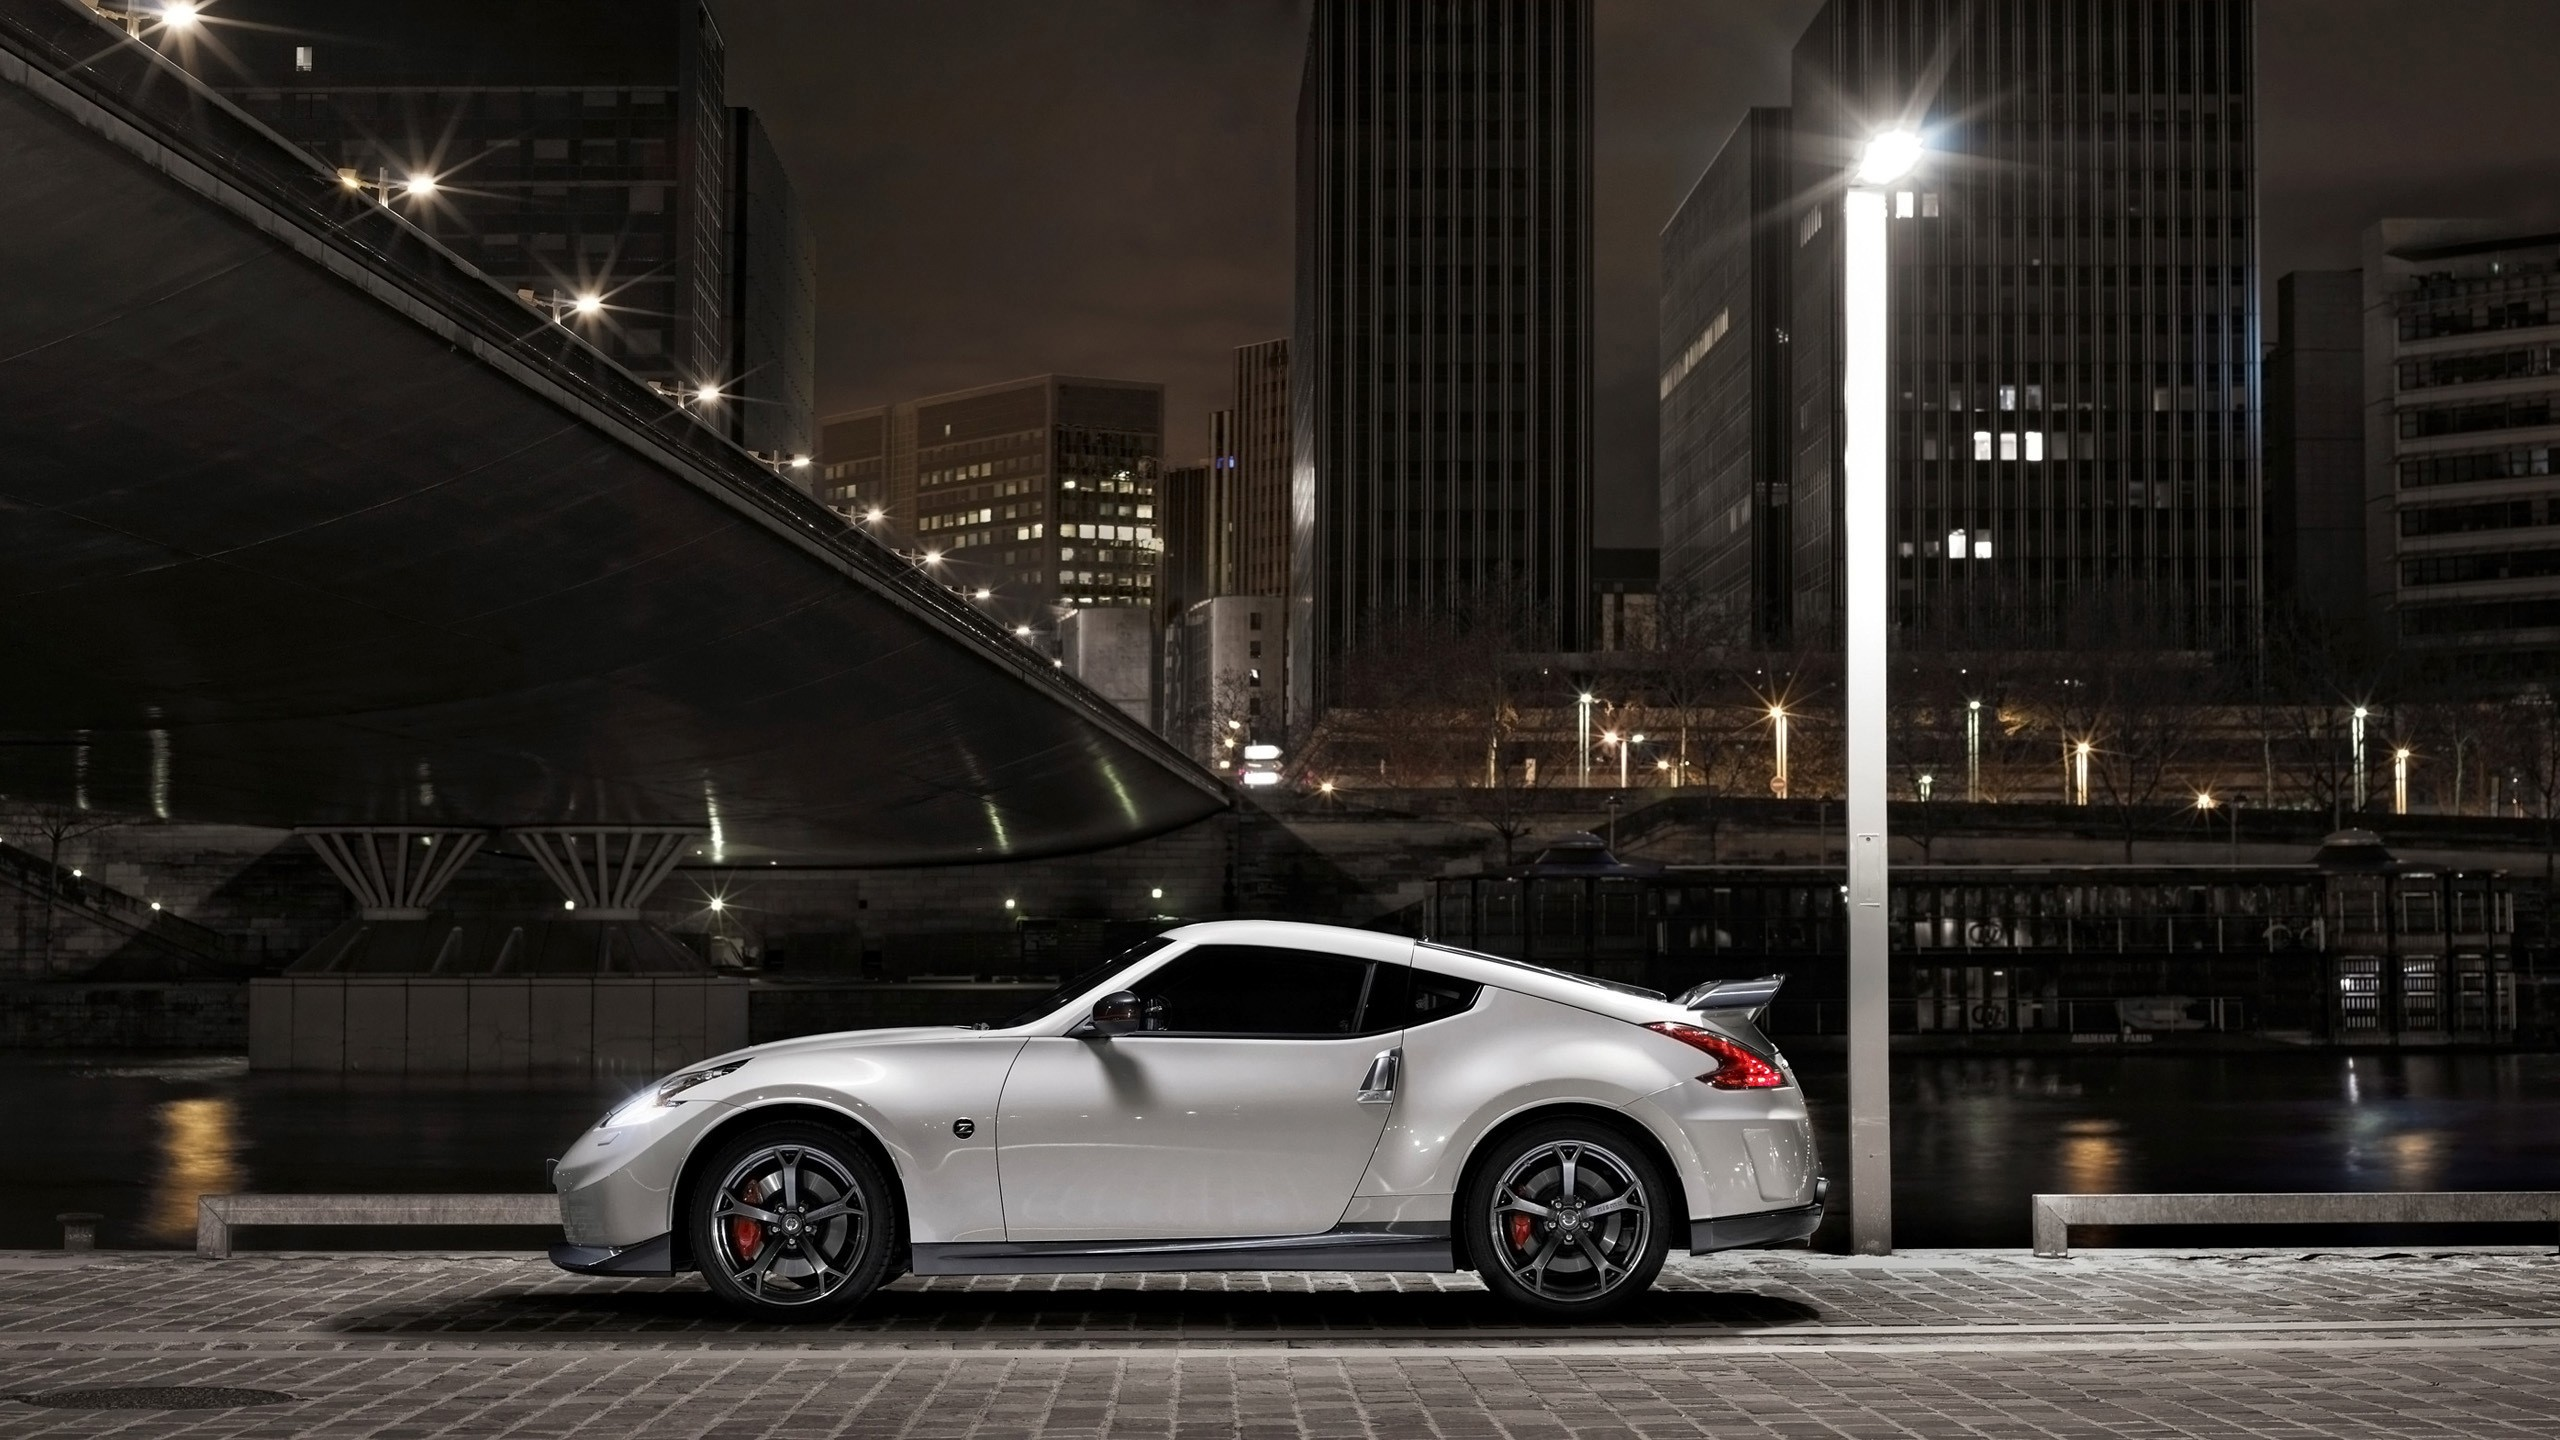 2014 Nissan 370z Nismo 2 Wallpaper Hd Car Wallpapers